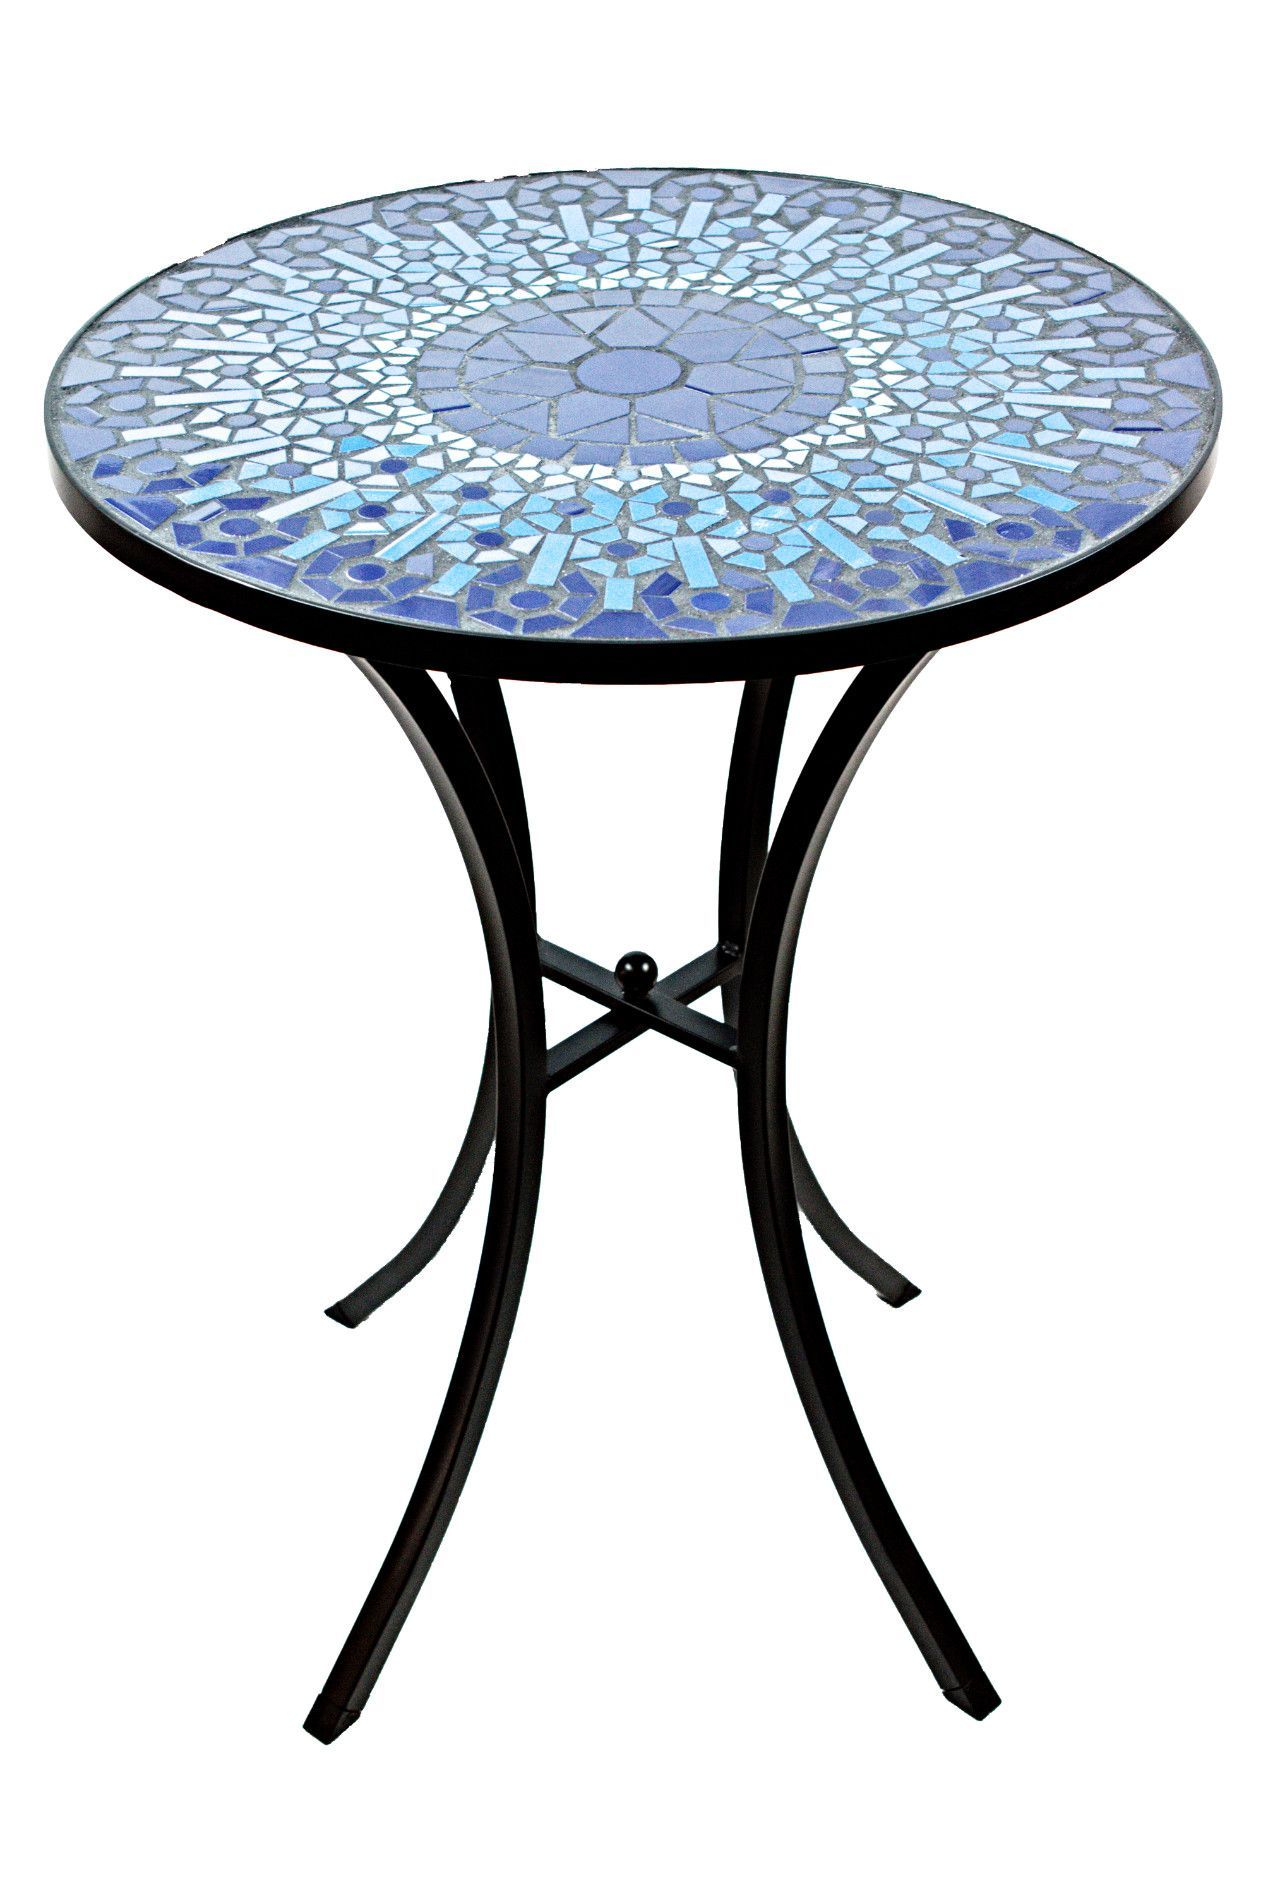 mosaic accent table tile patterns outdoor decor and mosaics drop umbrella patio with tall side tables living room everyday tablecloths cool daybed bunnings ethan allen console